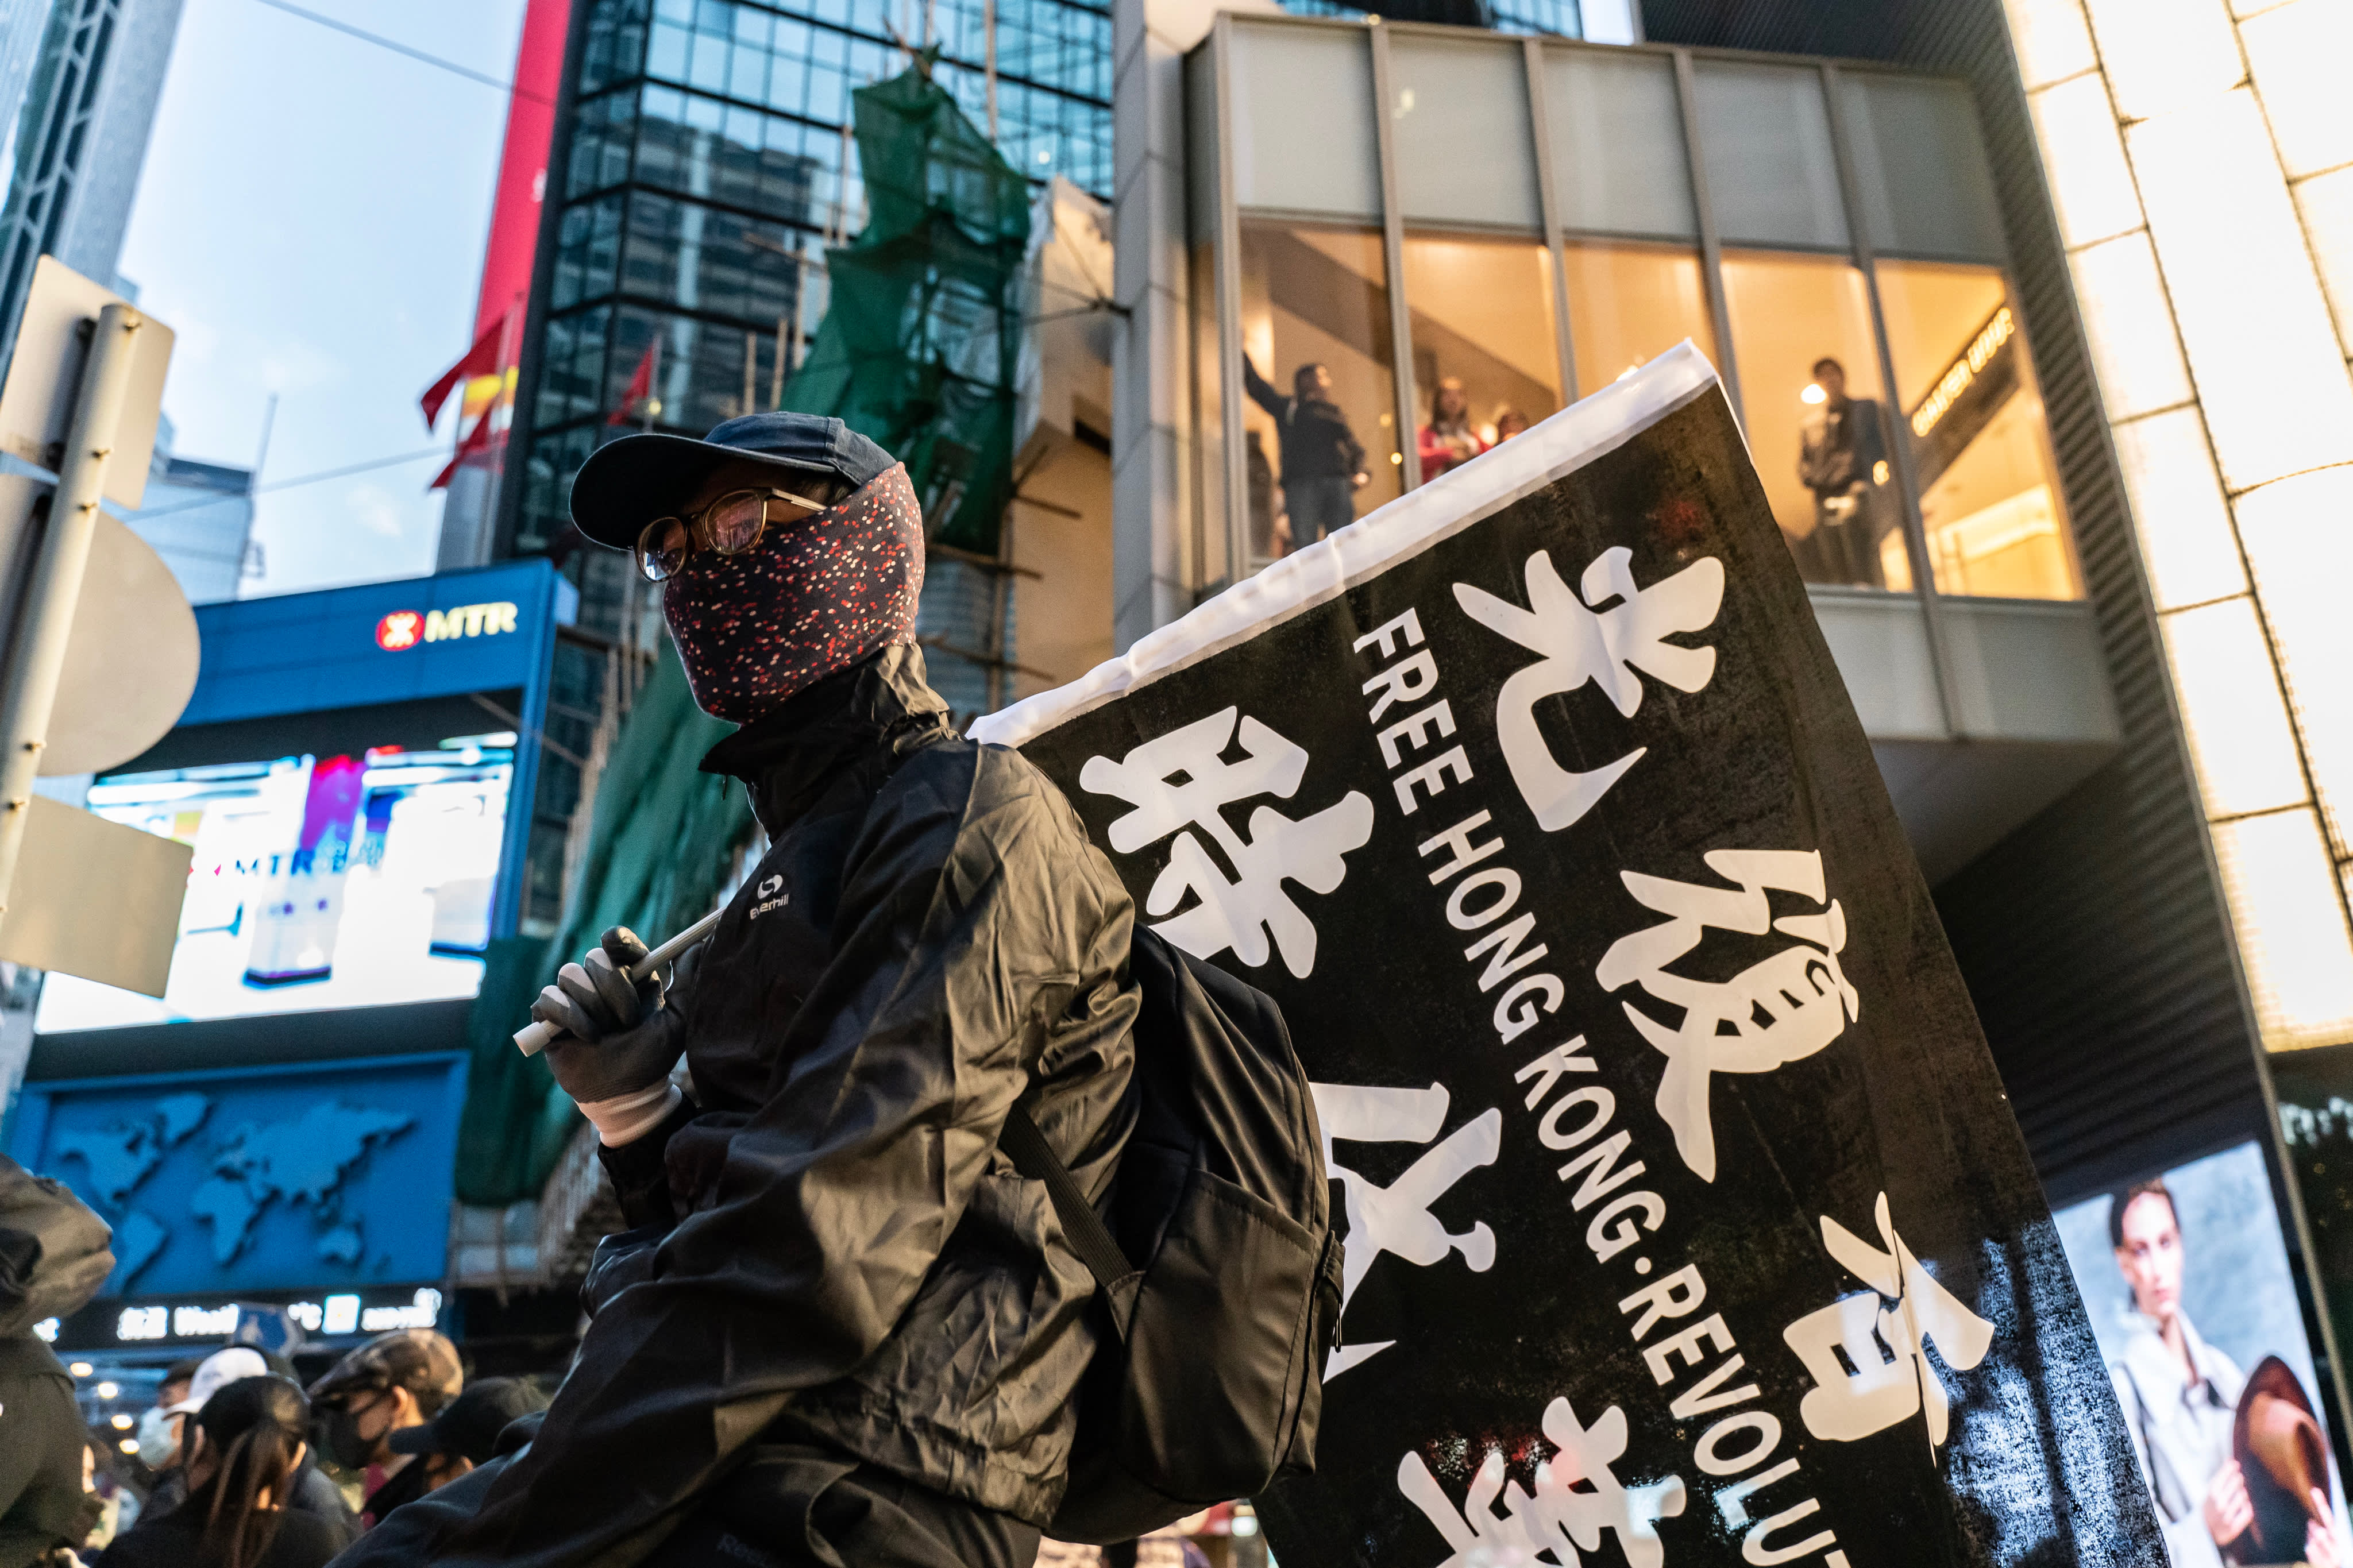 Hong Kong sees biggest protests since democrats' election victory